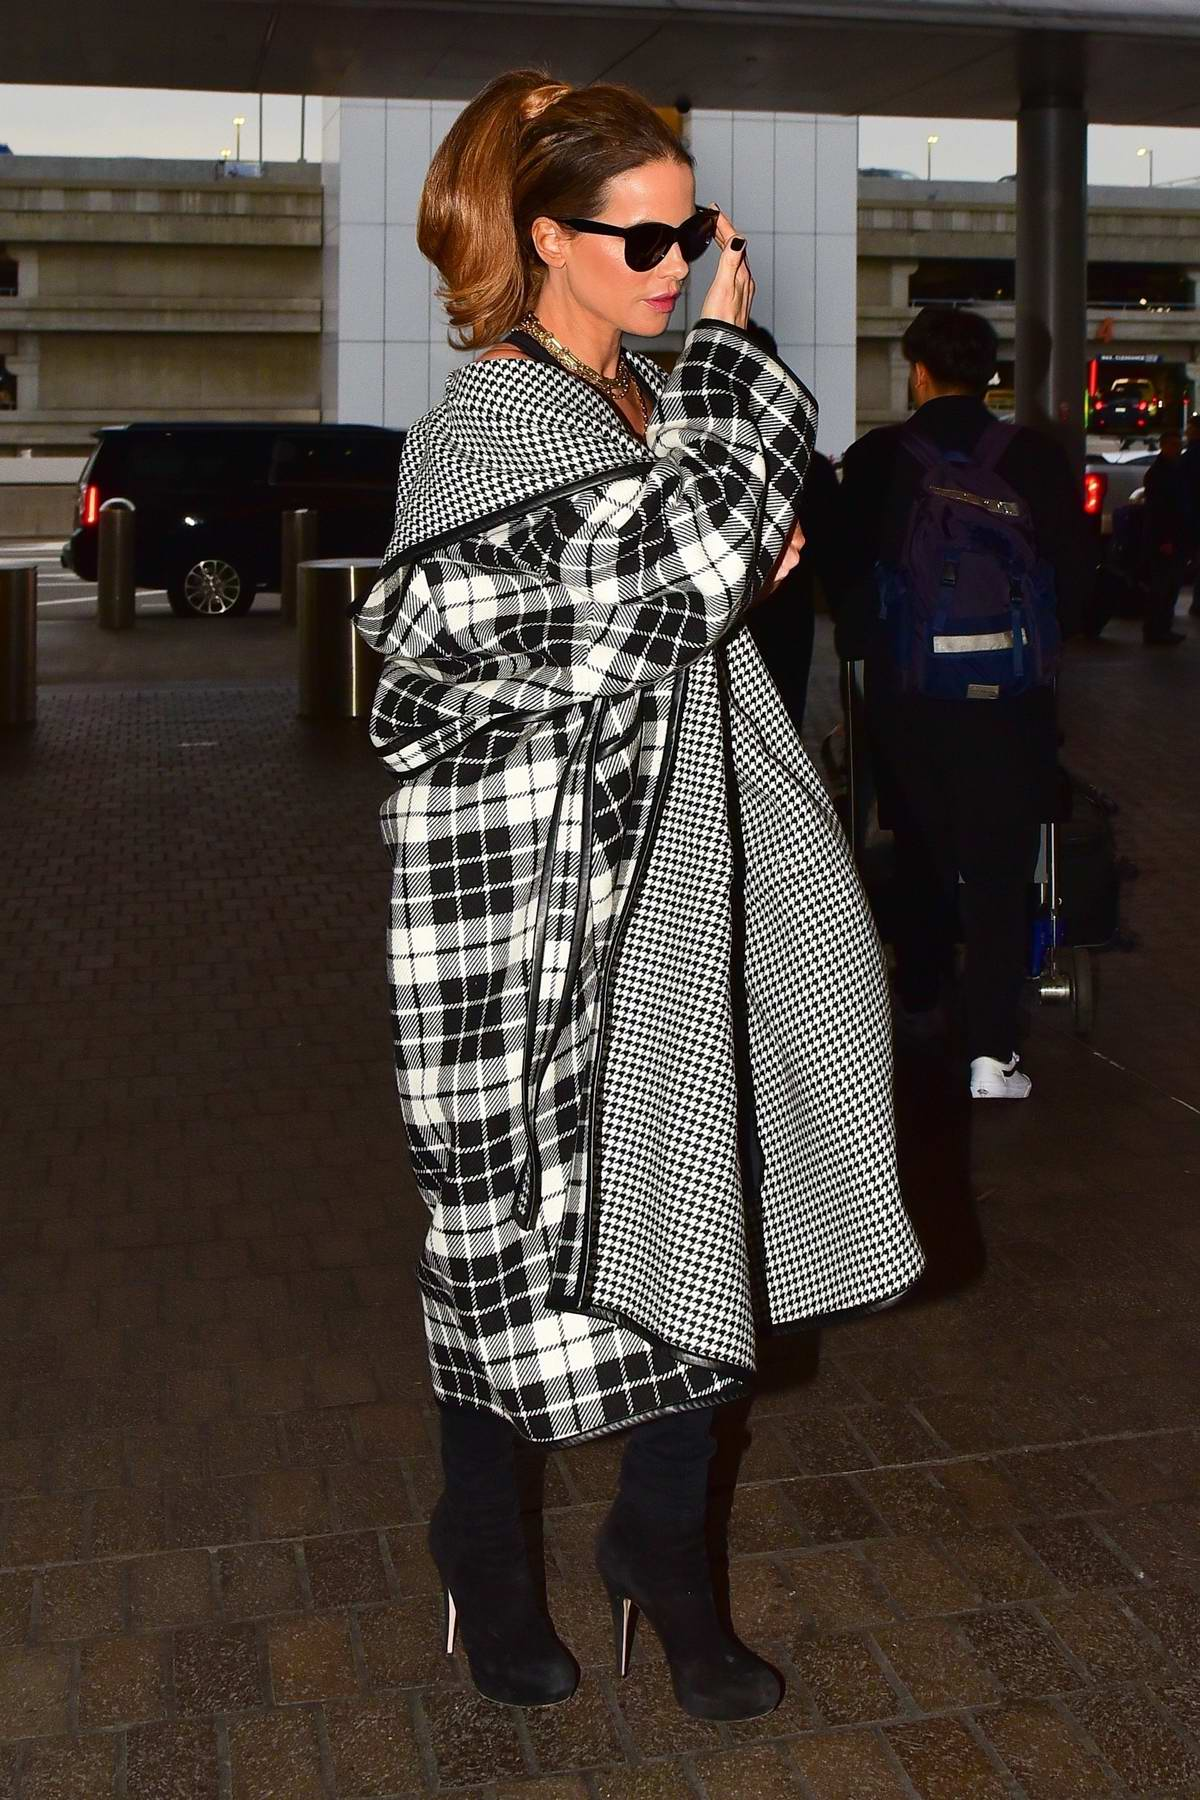 Kate Beckinsale looks stylish in monochrome plaid outfit as she arrives for a flight to London at LAX airport in Los Angeles